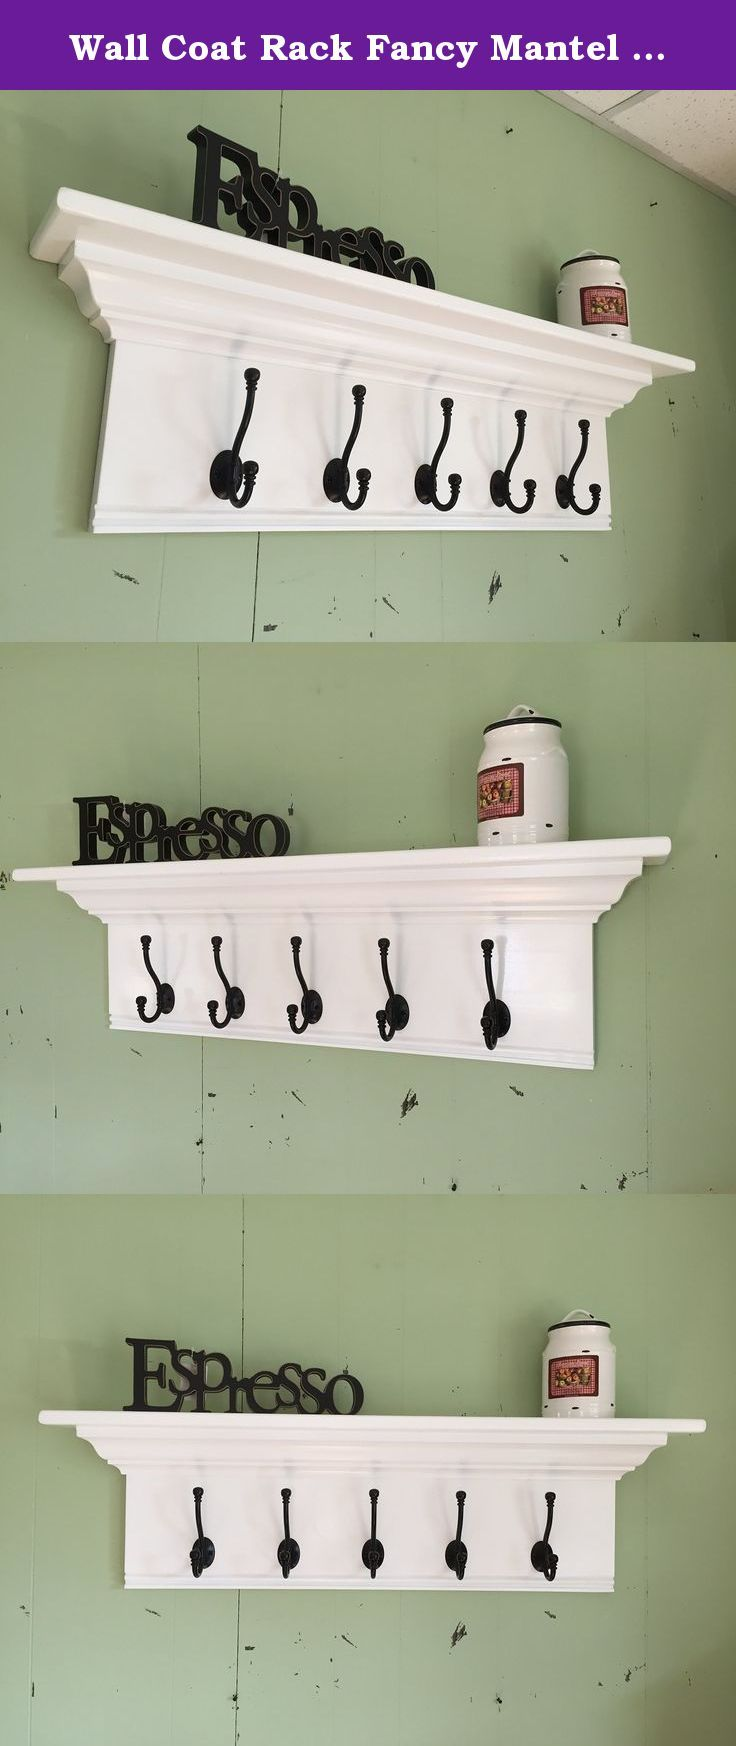 """Wall Coat Rack Fancy Mantel Coat Rail 36"""" with Crown Molding. A beautiful wall hanging coat rack. It would look great in any room of your home. This one measures an overall 36"""" wide x 10"""" tall x 5"""" deep. It is finished in white and comes with 5 Black English hooks. It comes with 2 heavy duty keyhole mounting brackets on the back for easy hanging. If this size of color does not work let us know. We welcome custom orders. If you would like to customize your item (size, material, hooks, and..."""